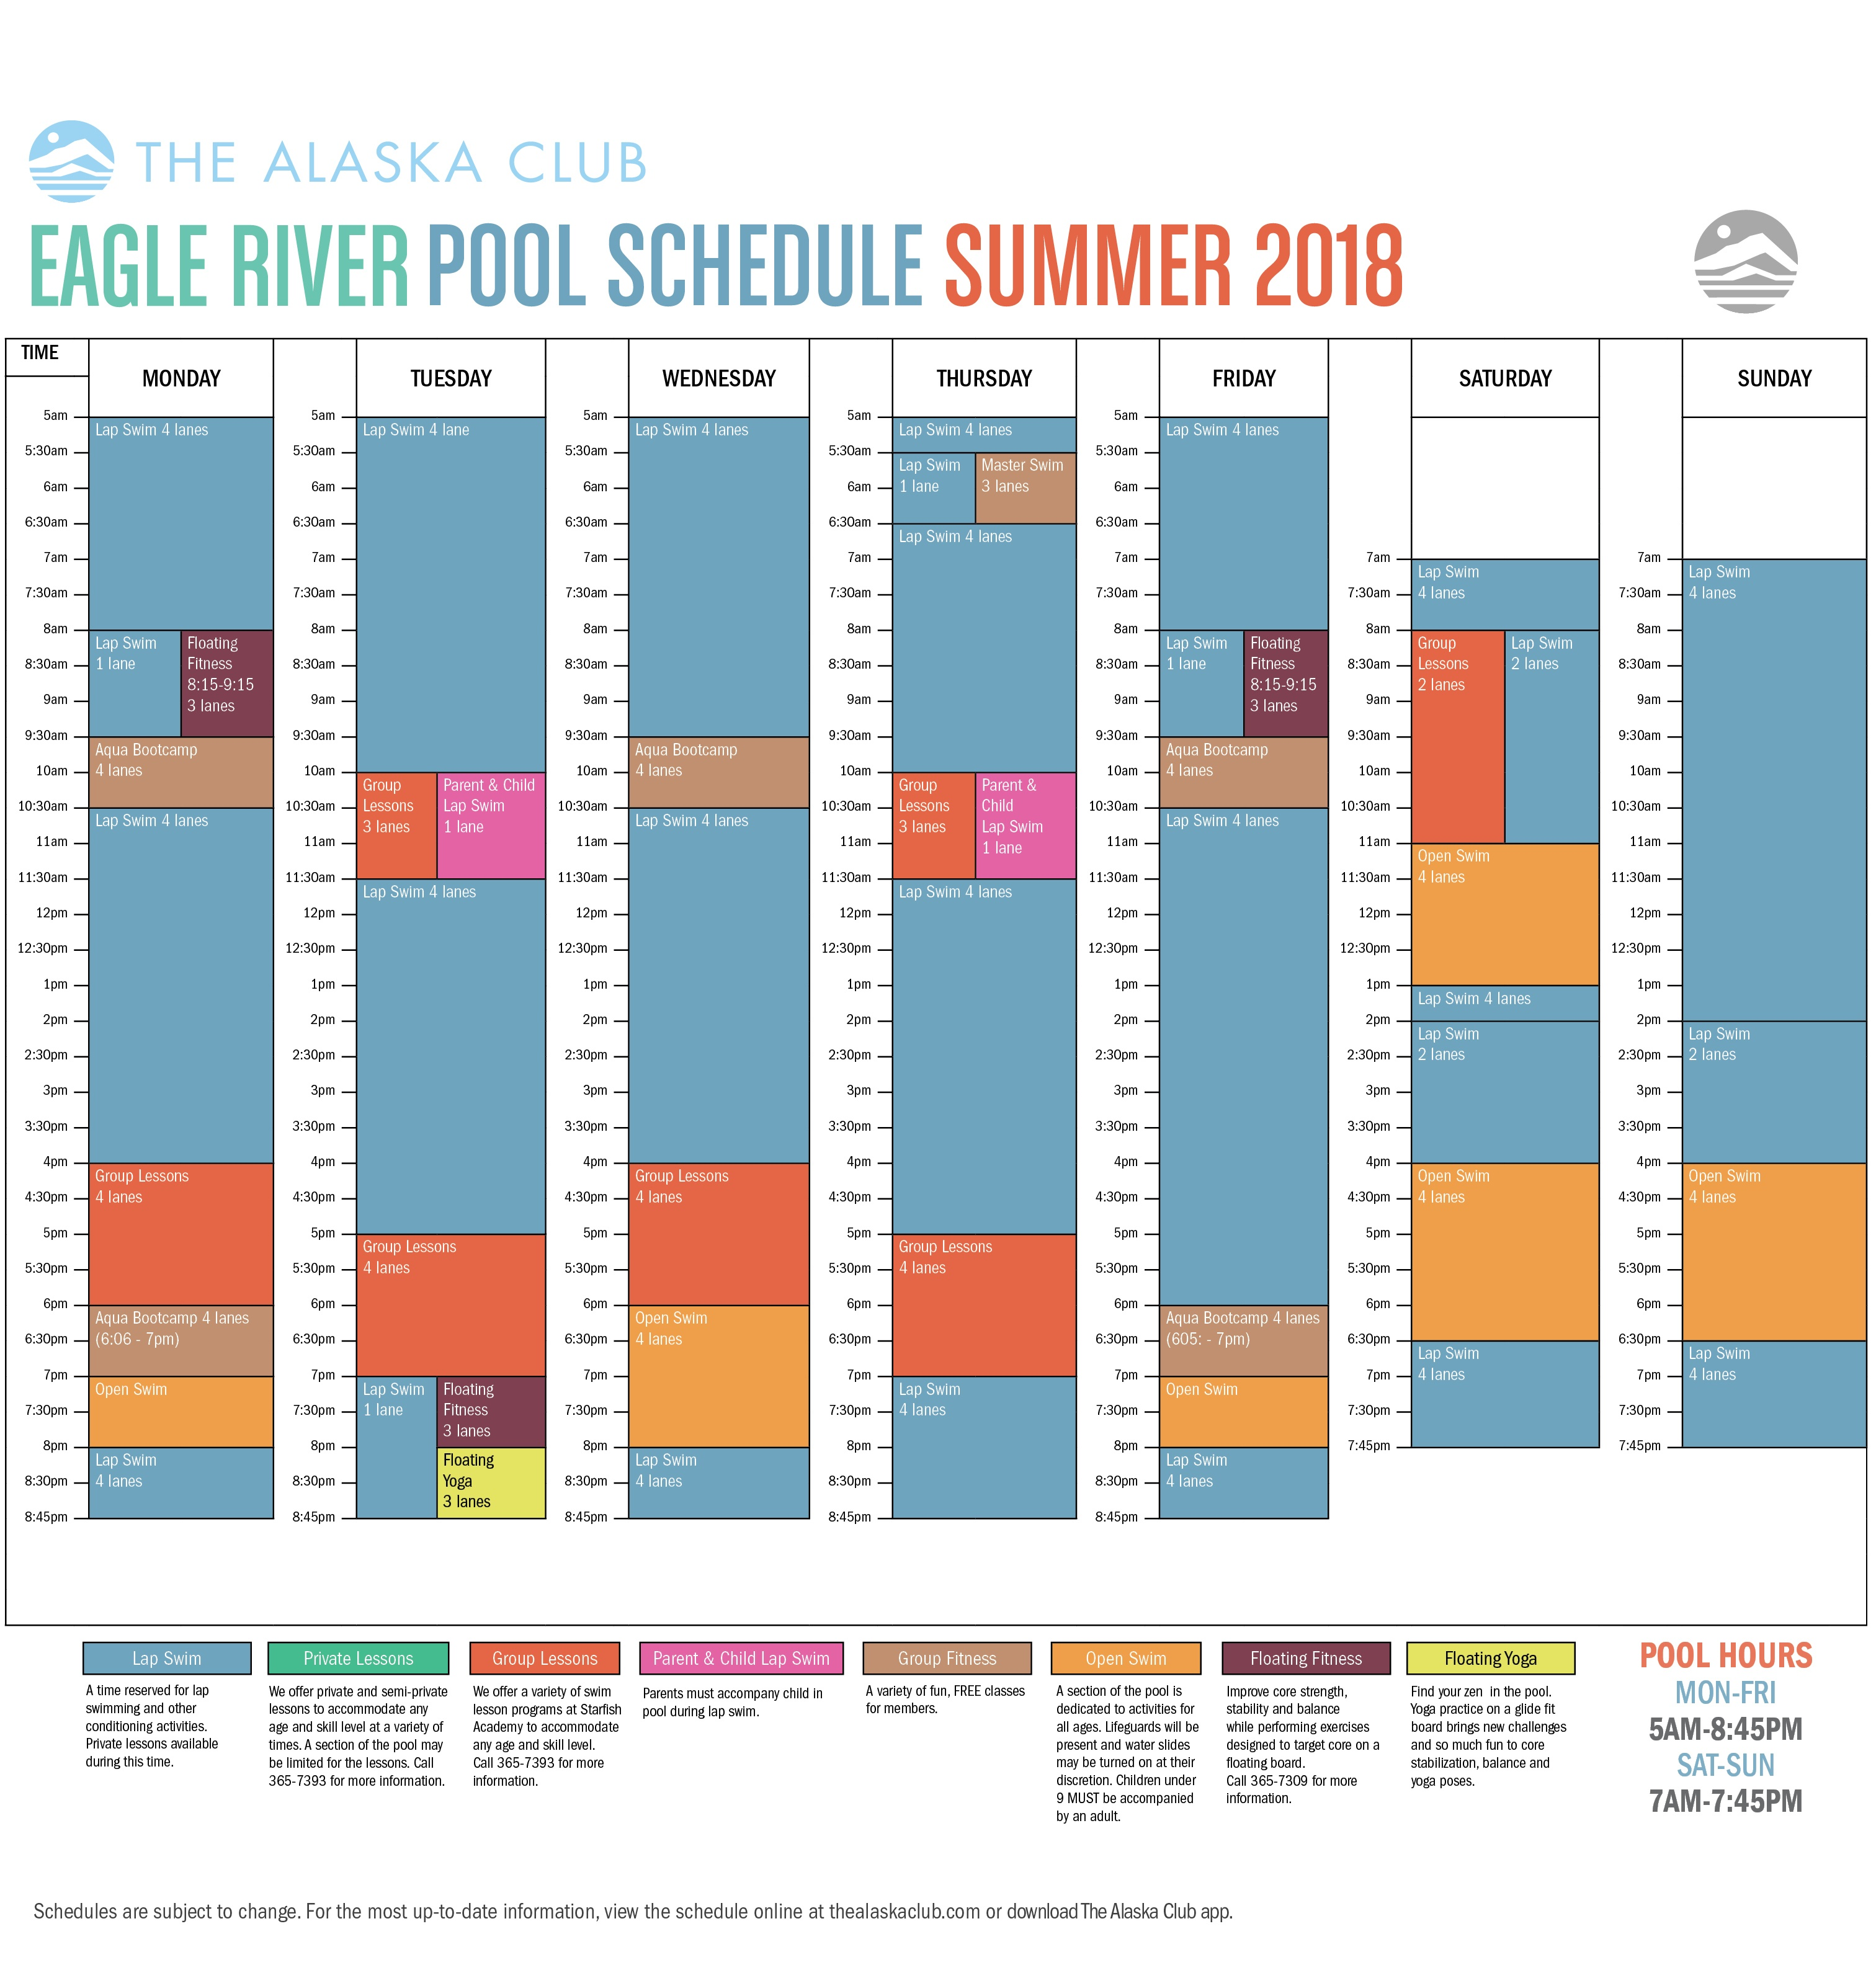 2018 Eagle River Pool Schedule